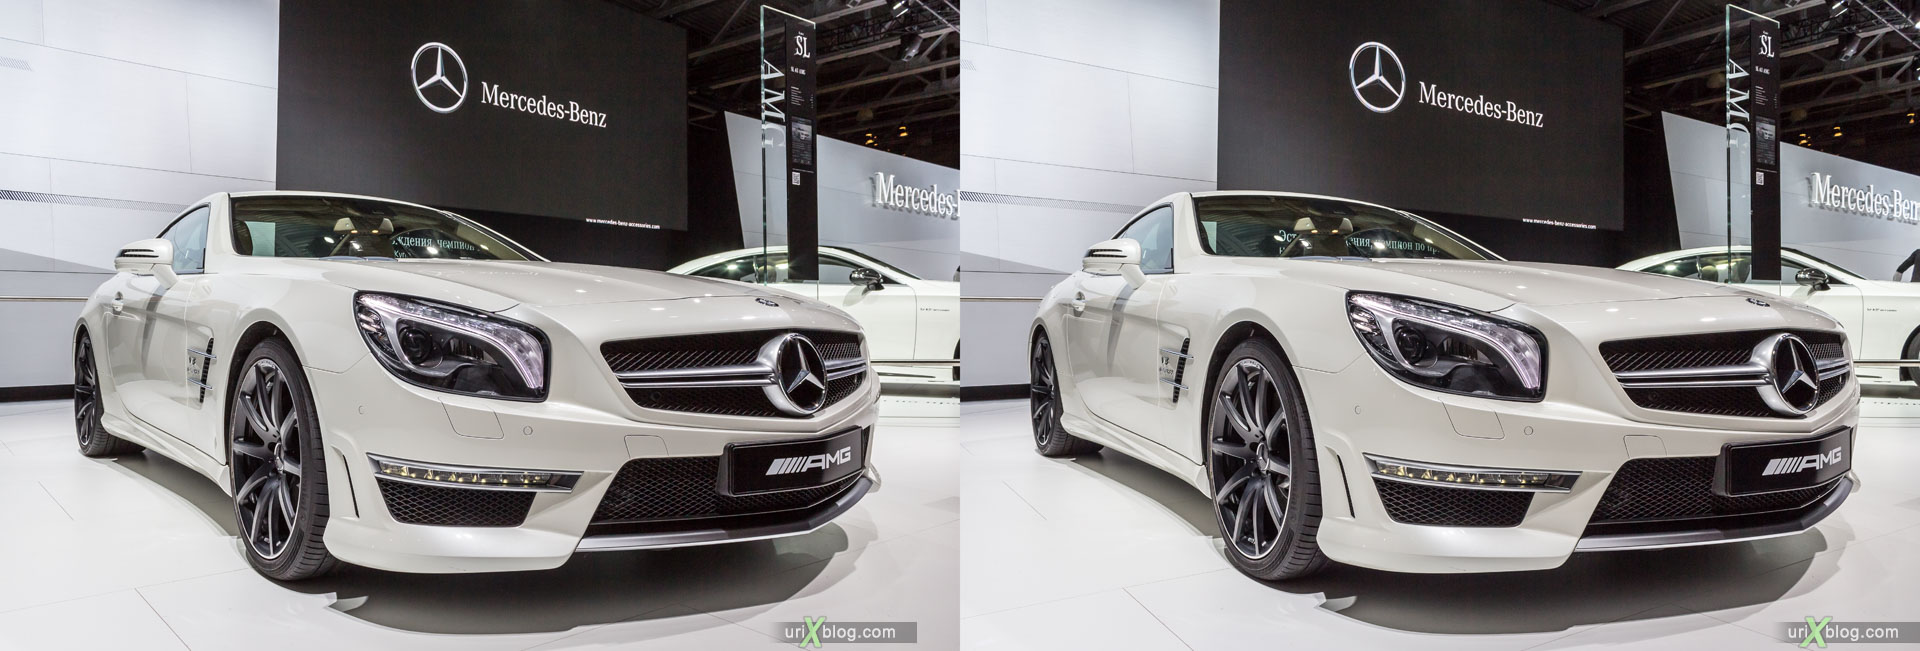 Mercedes-Benz AMG, Moscow International Automobile Salon 2014, MIAS 2014, girls, models, Crocus Expo, Moscow, Russia, 3D, stereo pair, cross-eyed, crossview, cross view stereo pair, stereoscopic, 2014